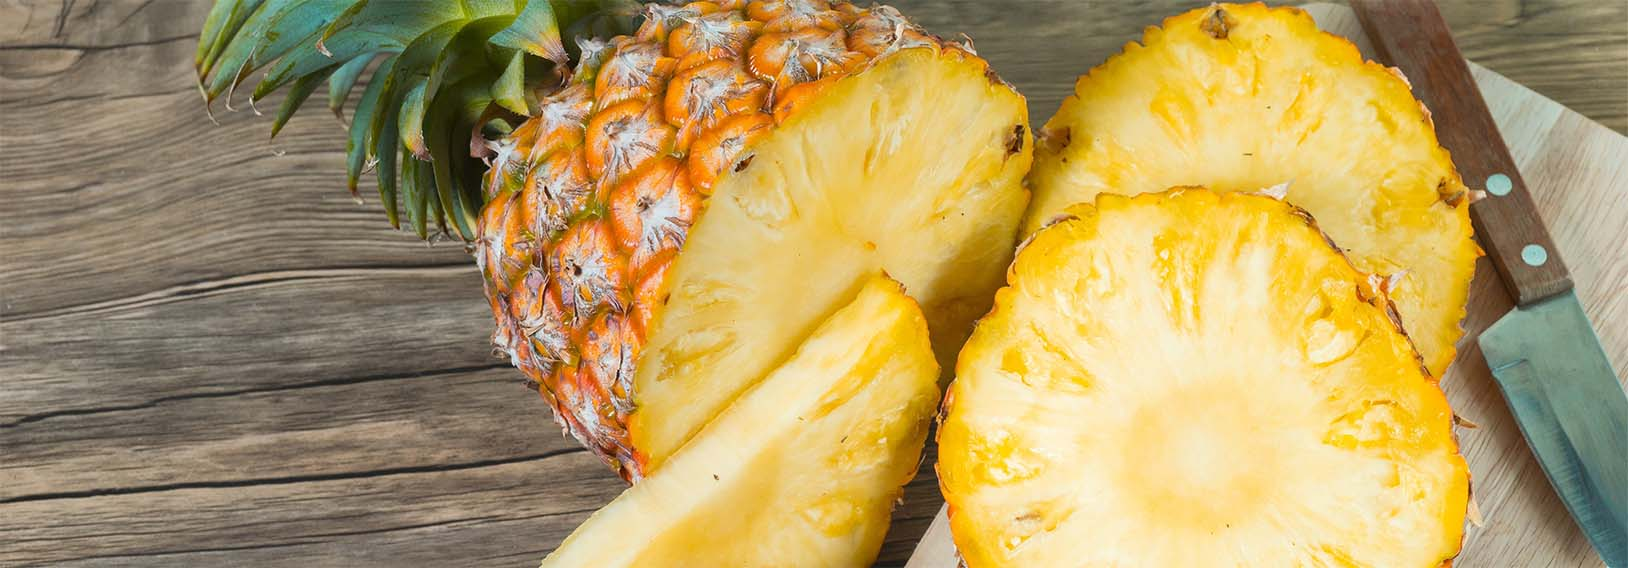 Why Eat Pineapple Before Surgery and after?